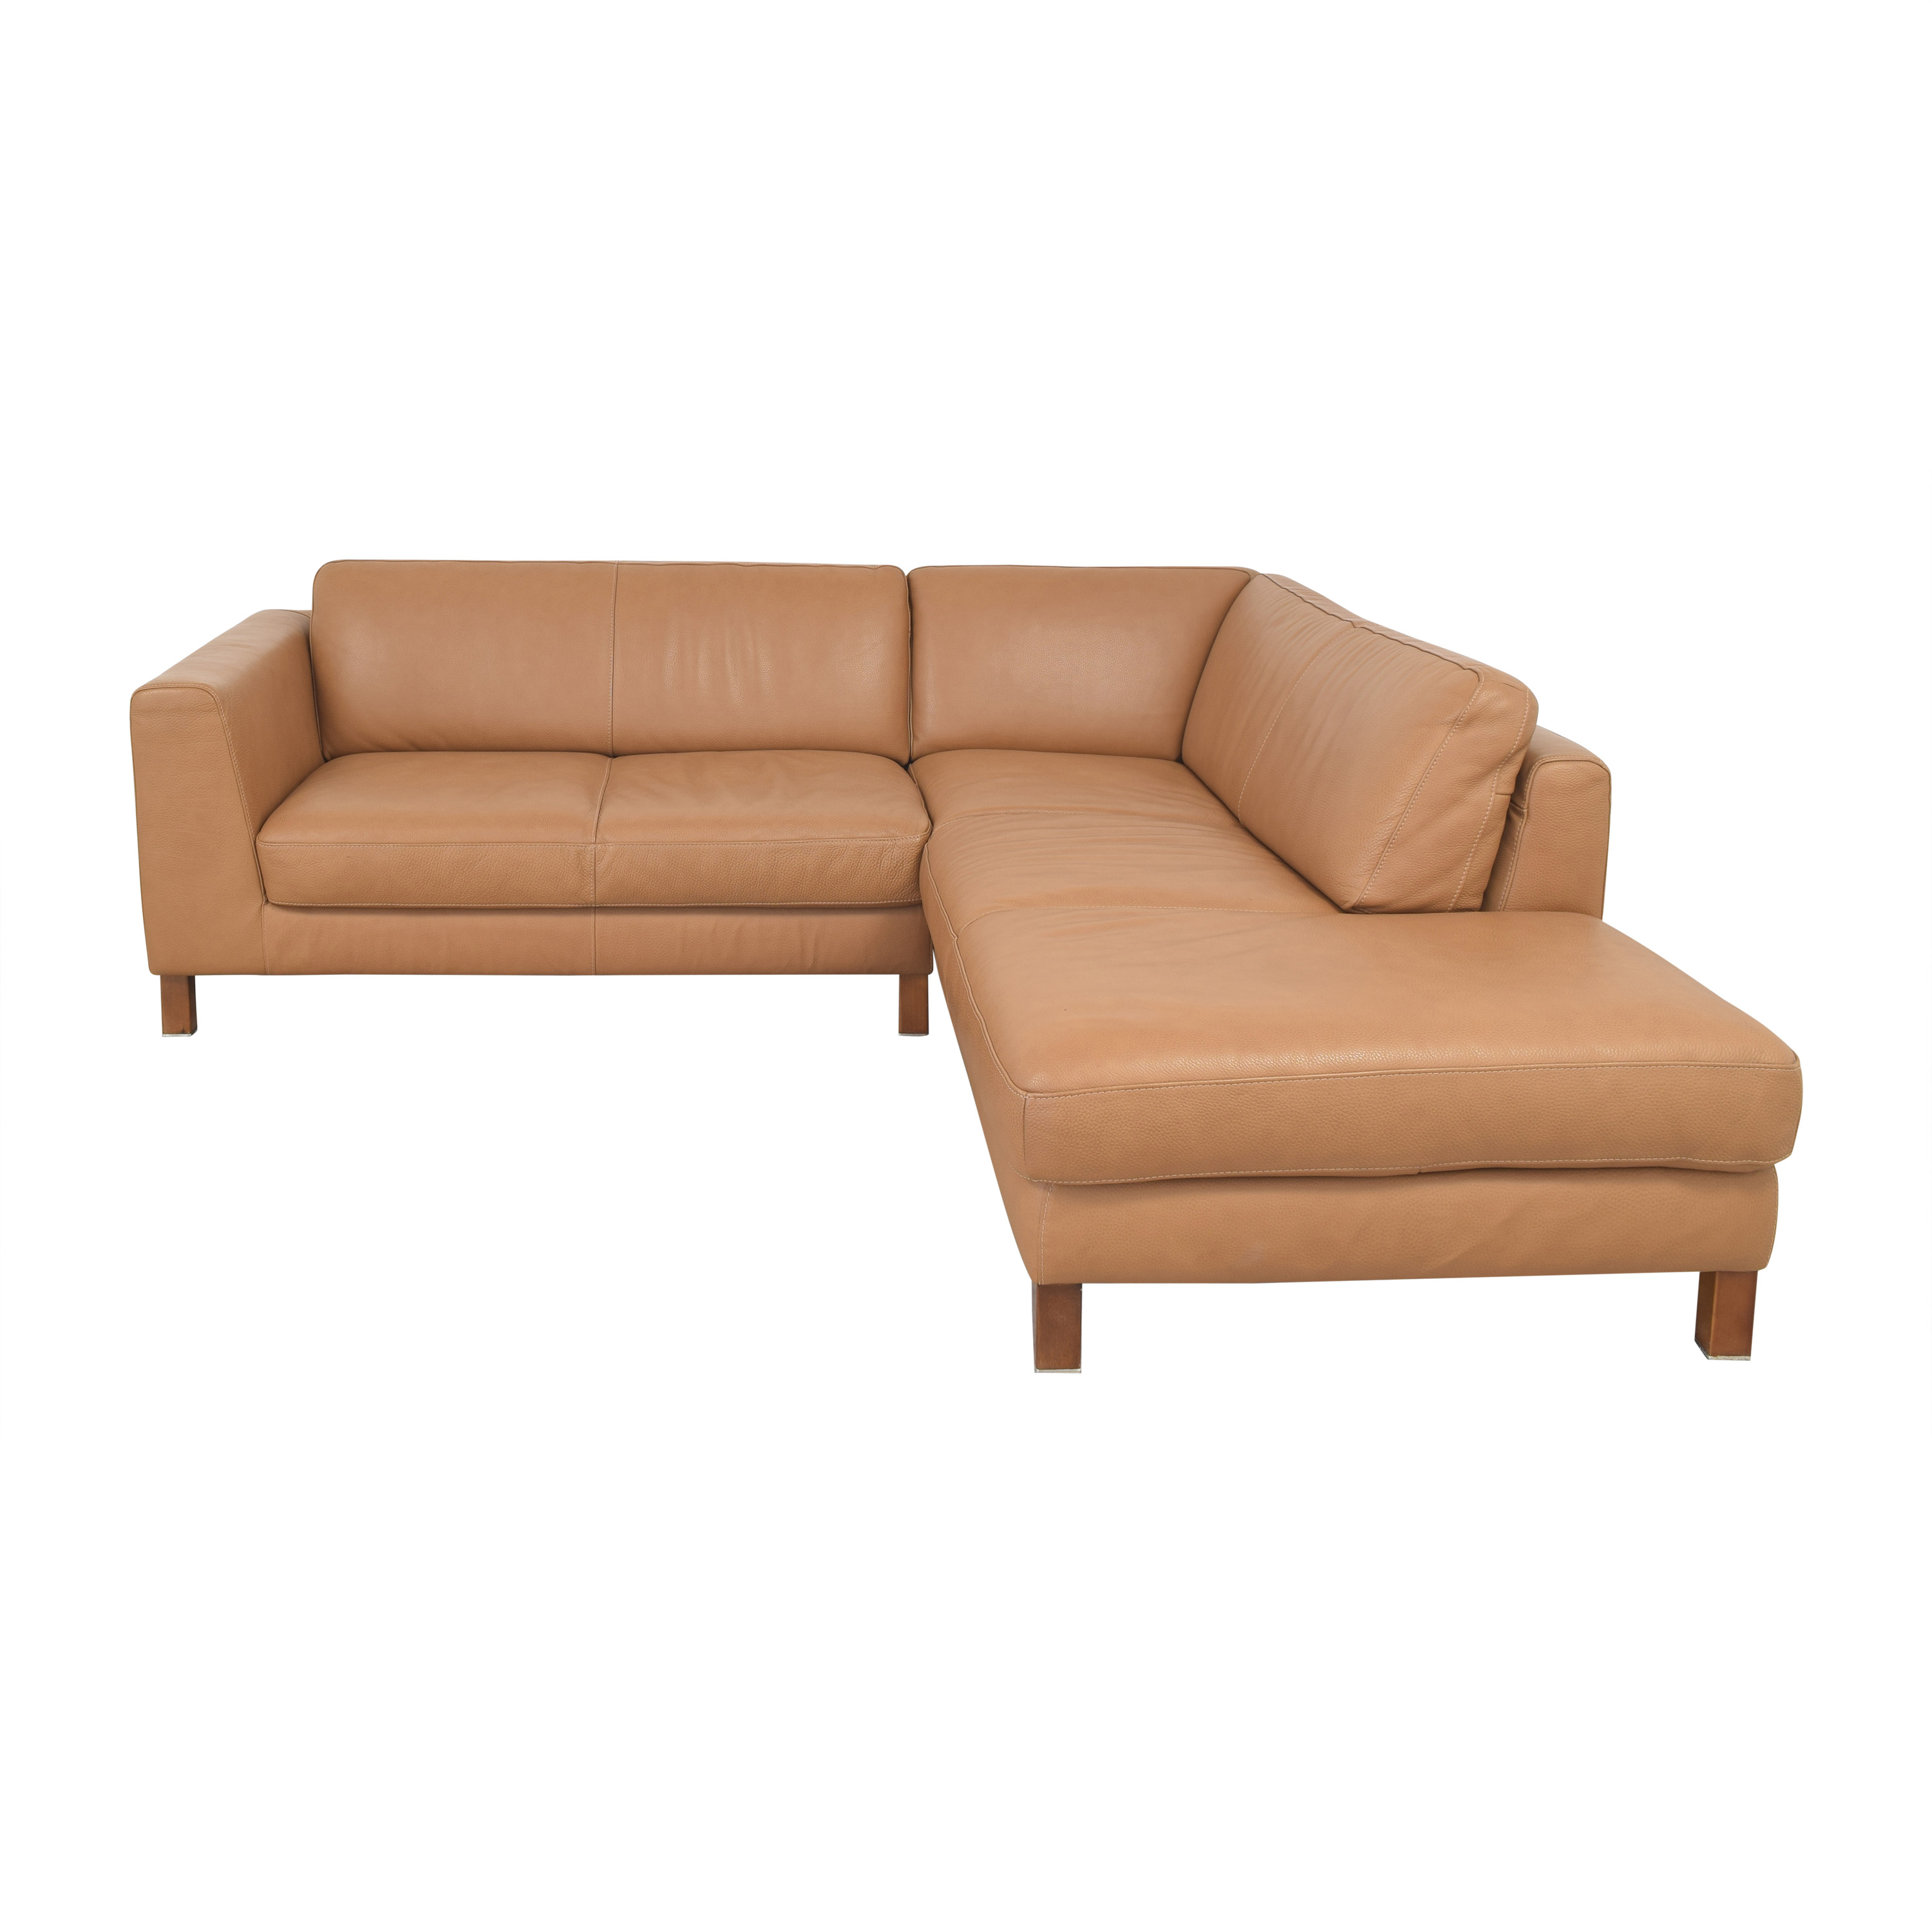 Bloomingdale's Sectional Sofa with Chaise Bloomingdale's